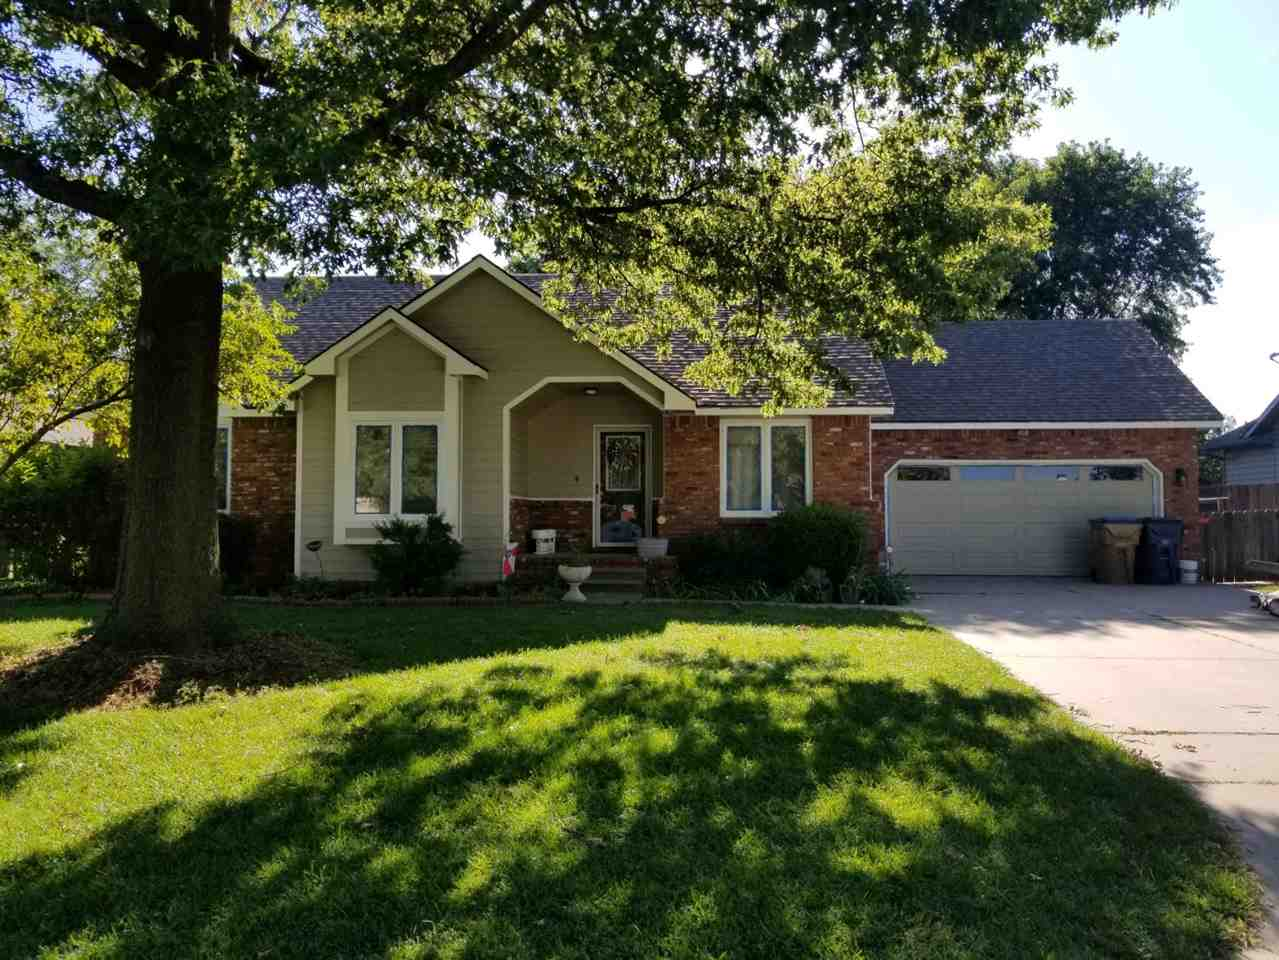 Freshly painted 4bed/3bath home has wood floors up and brand new carpet thru entire basement. Update